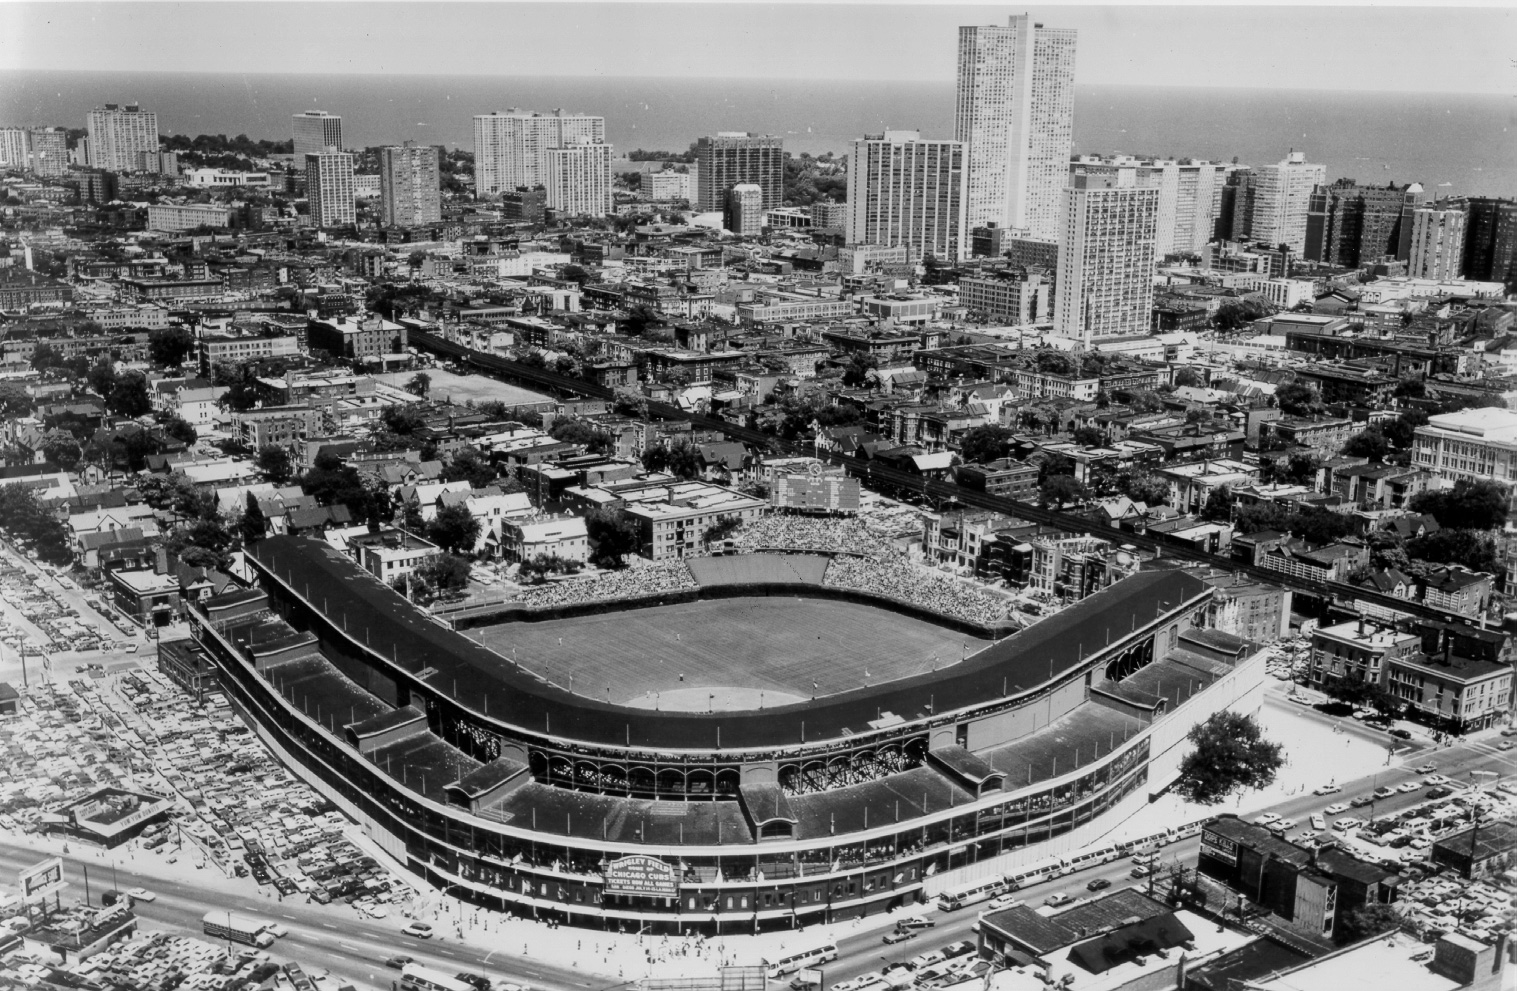 Wrigley field chicago cubs ballpark ballparks of baseball malvernweather Image collections